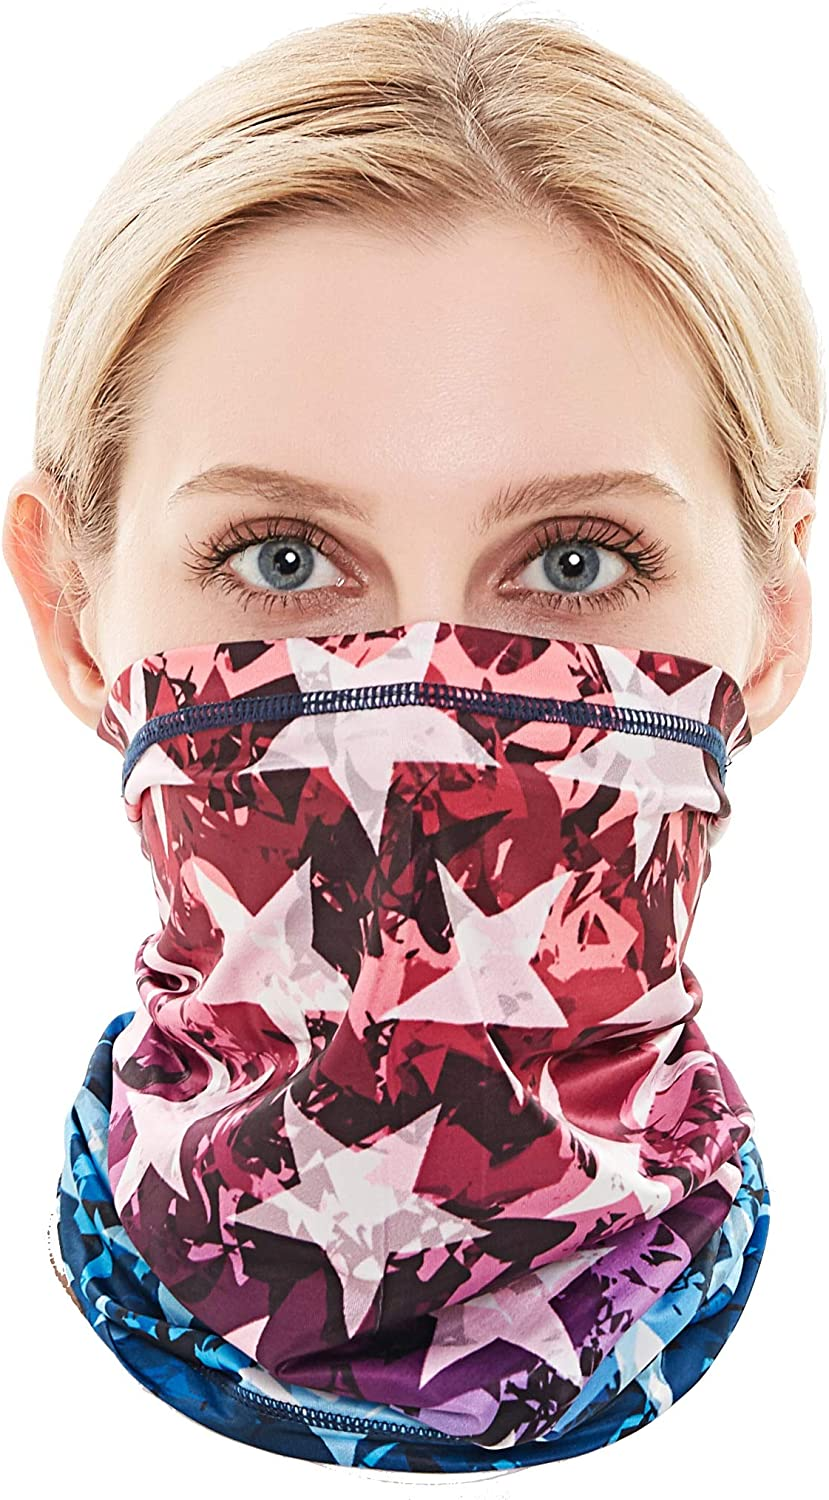 Neck Gaiter Face Cover Scarf Gator Face Mask for Cold Wind Dust - Reusable Balaclava Bandana for Men Women - 12 Ways to Wear